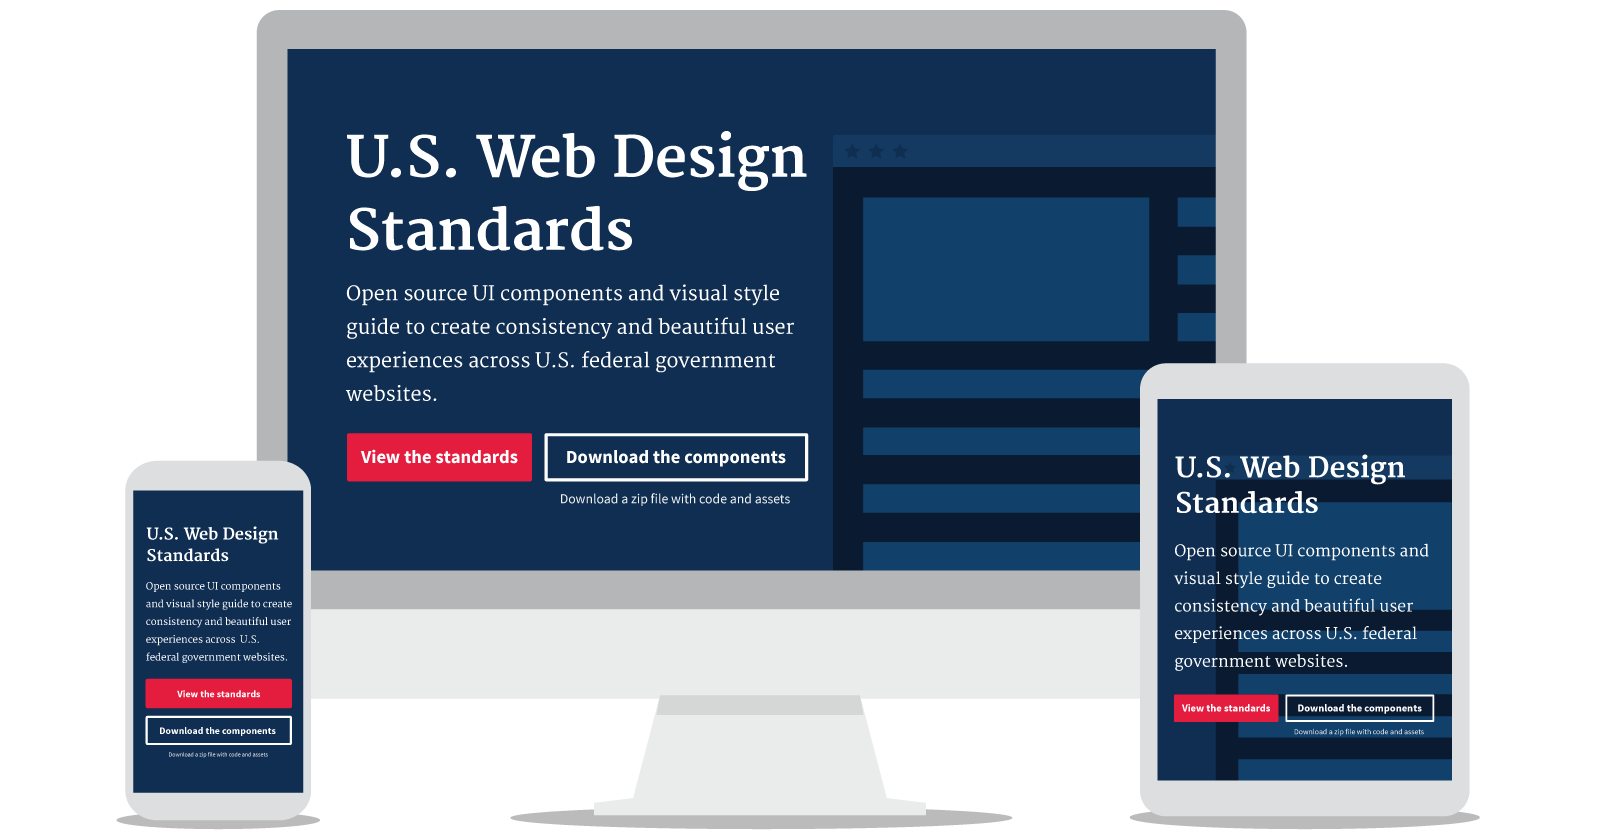 U.S. Web Design Standards Mockup